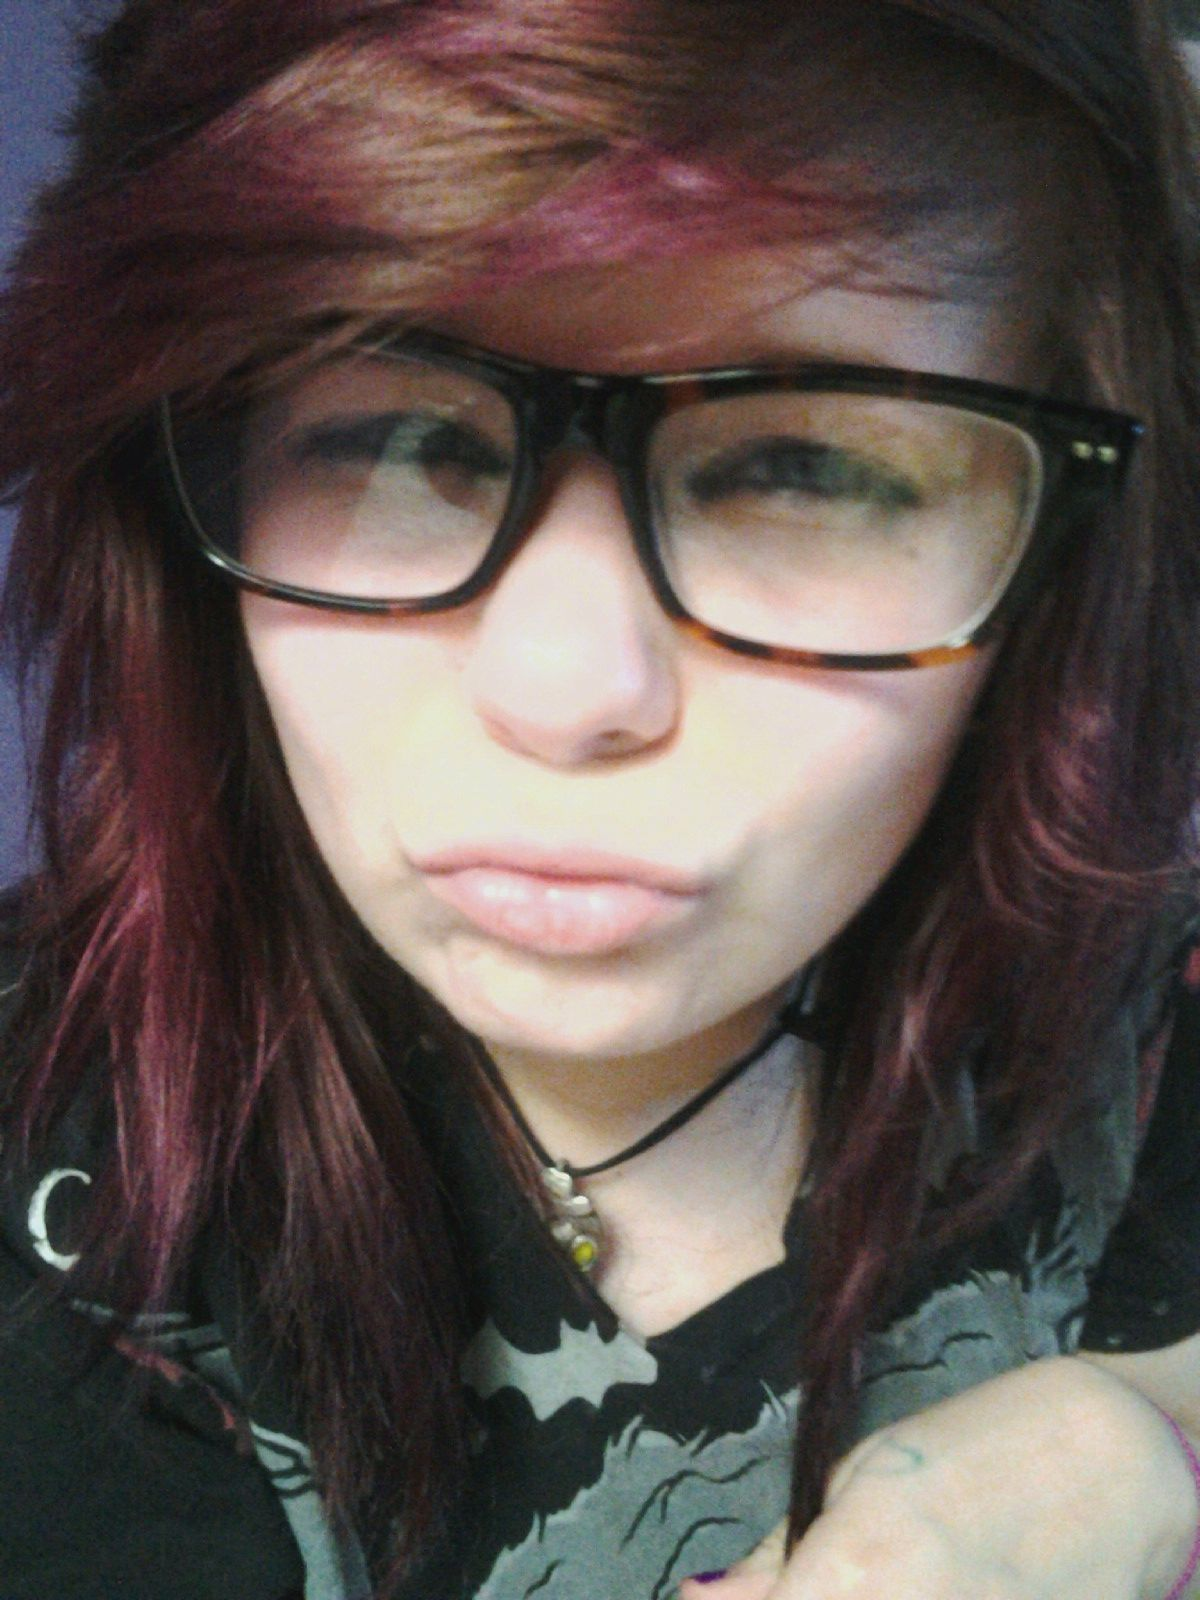 There was like purple, black, pink, and brown going on :P